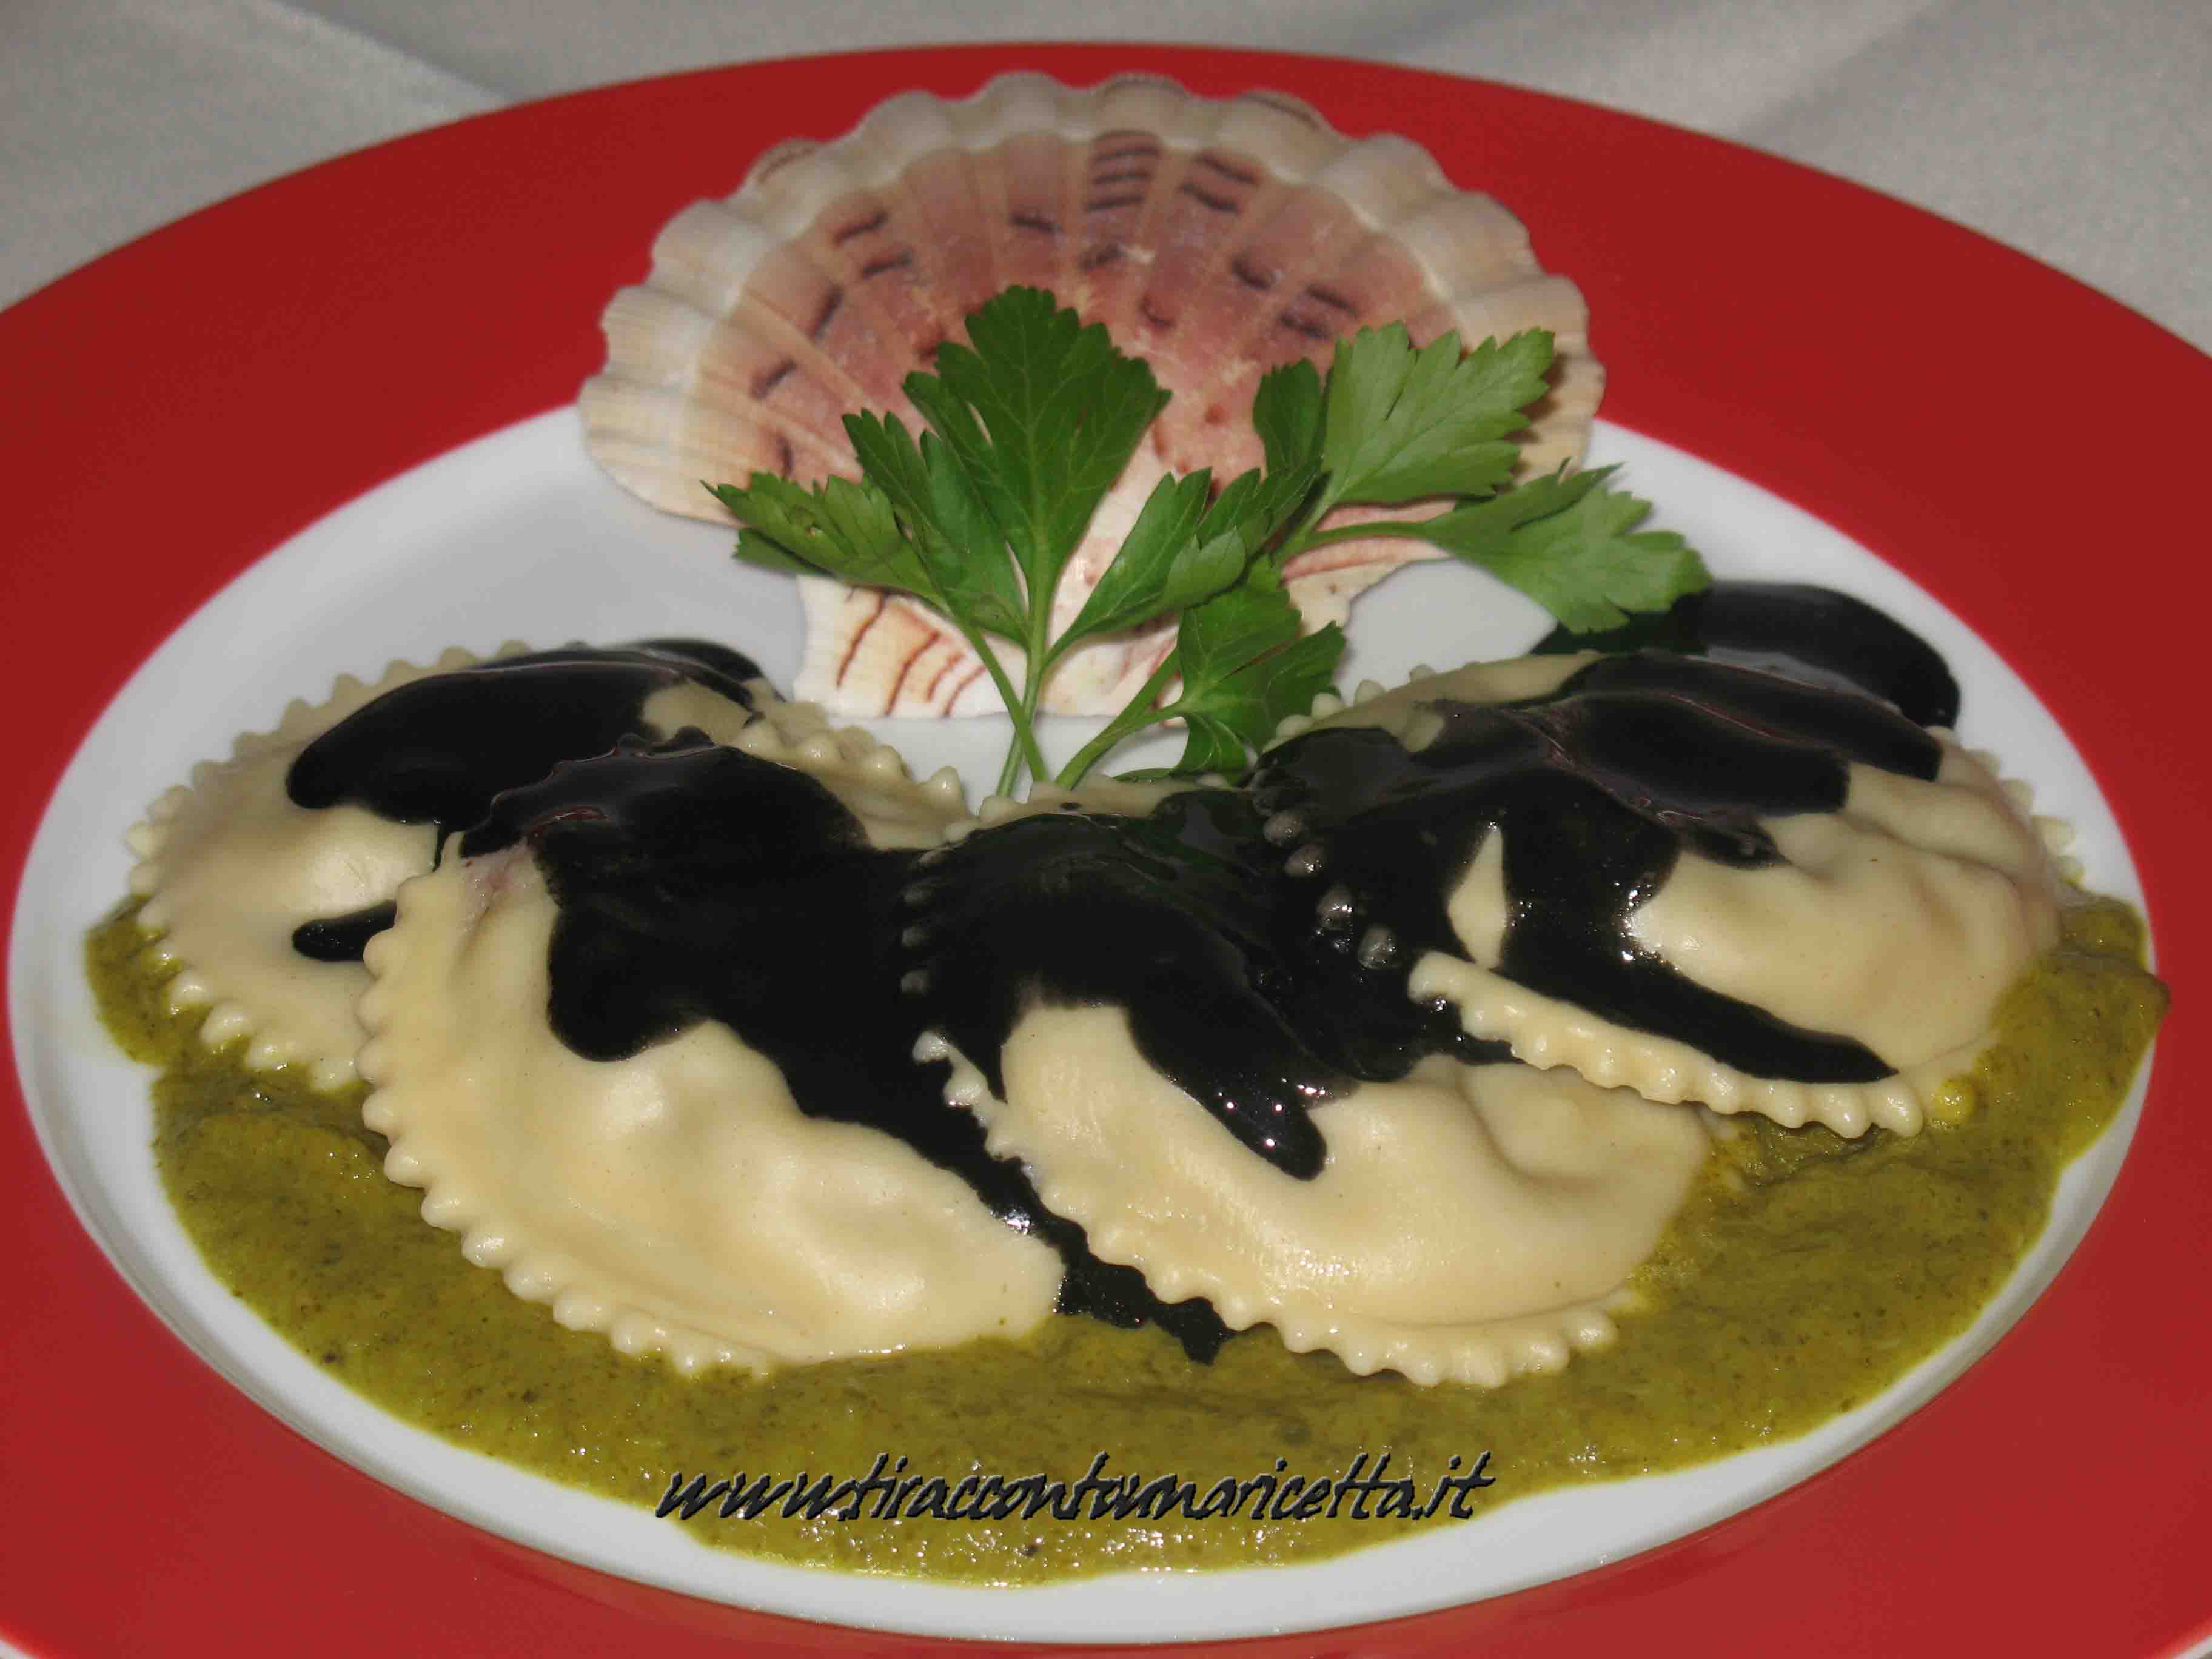 Ravioli with seafood and sepia on cream of lettuce